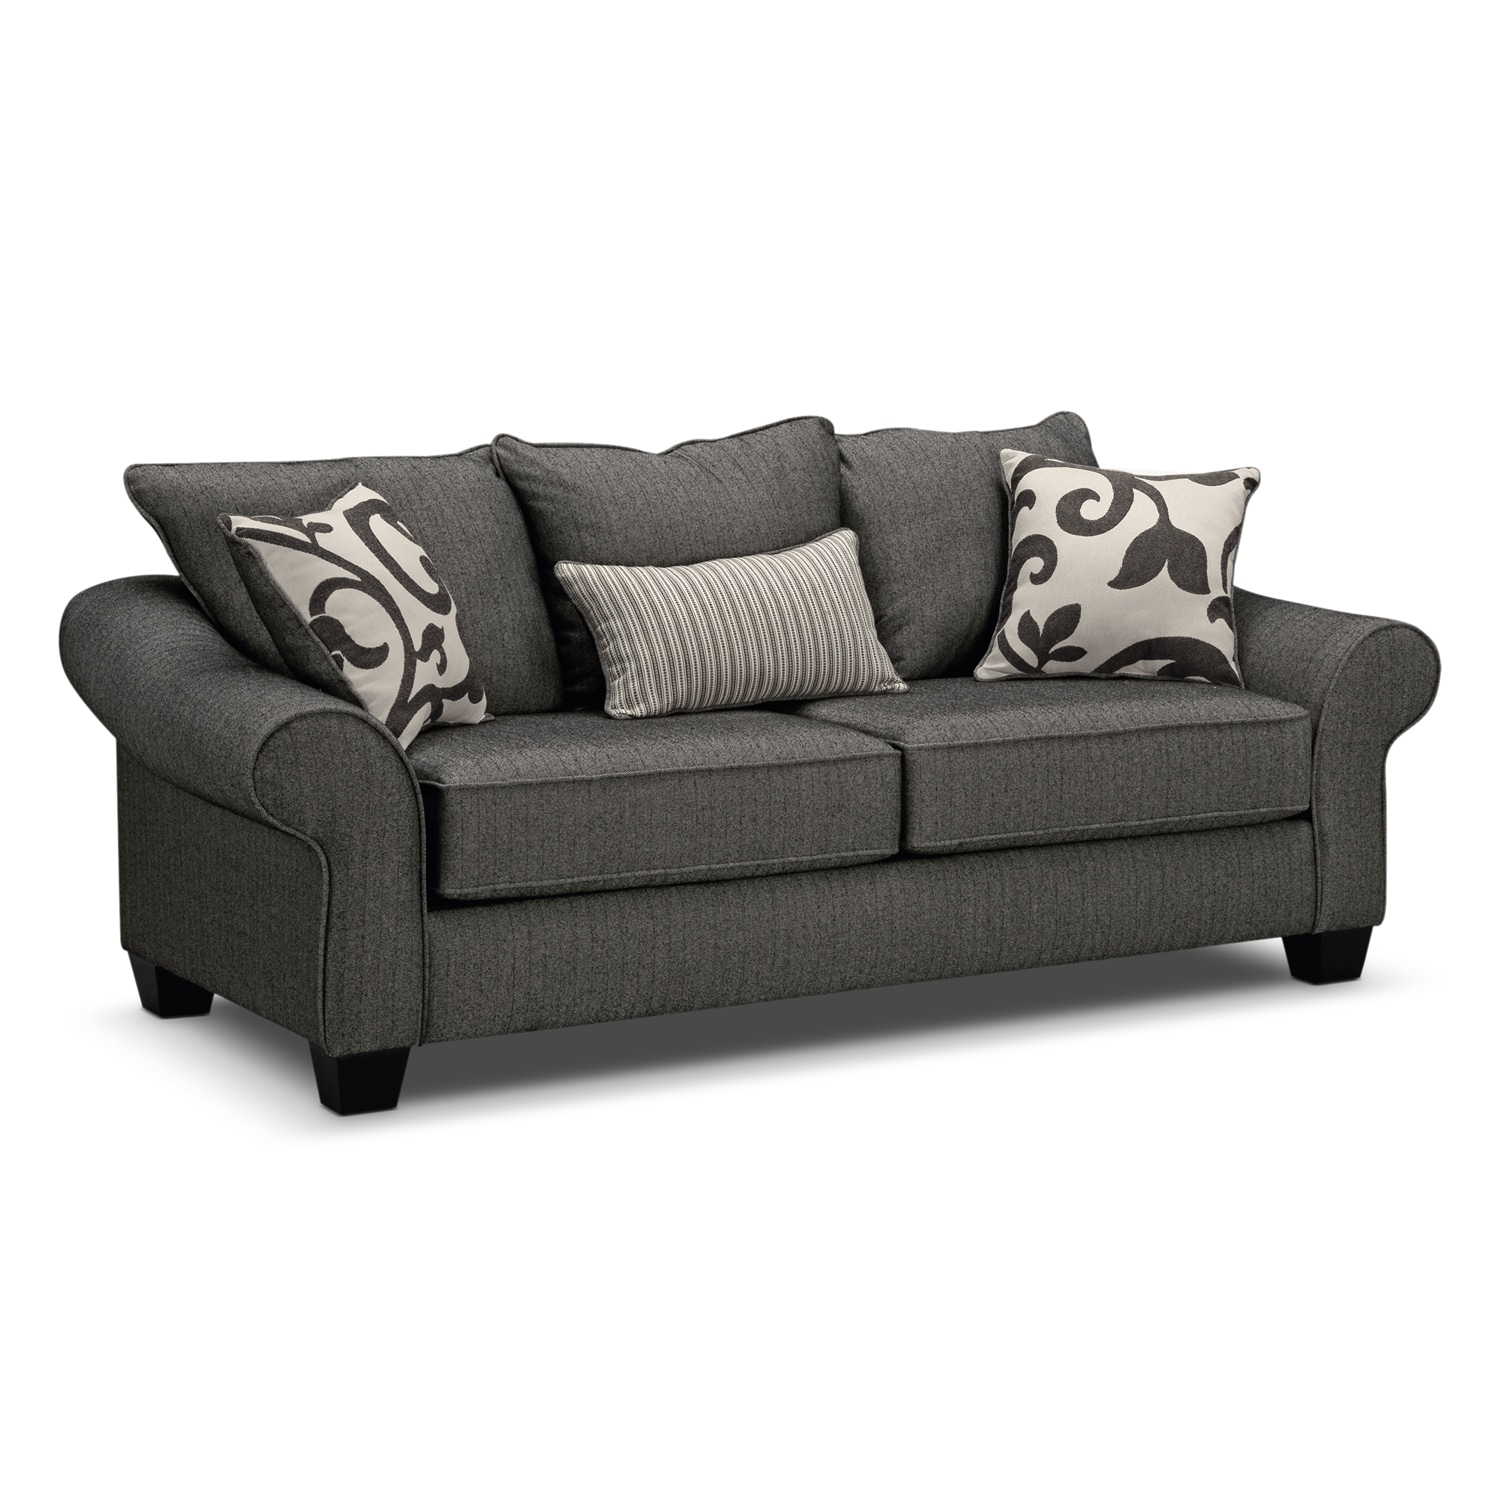 American Signature Furniture Com: Kroehler Sofa Lovely Kroehler Sofa 61 For Contemporary